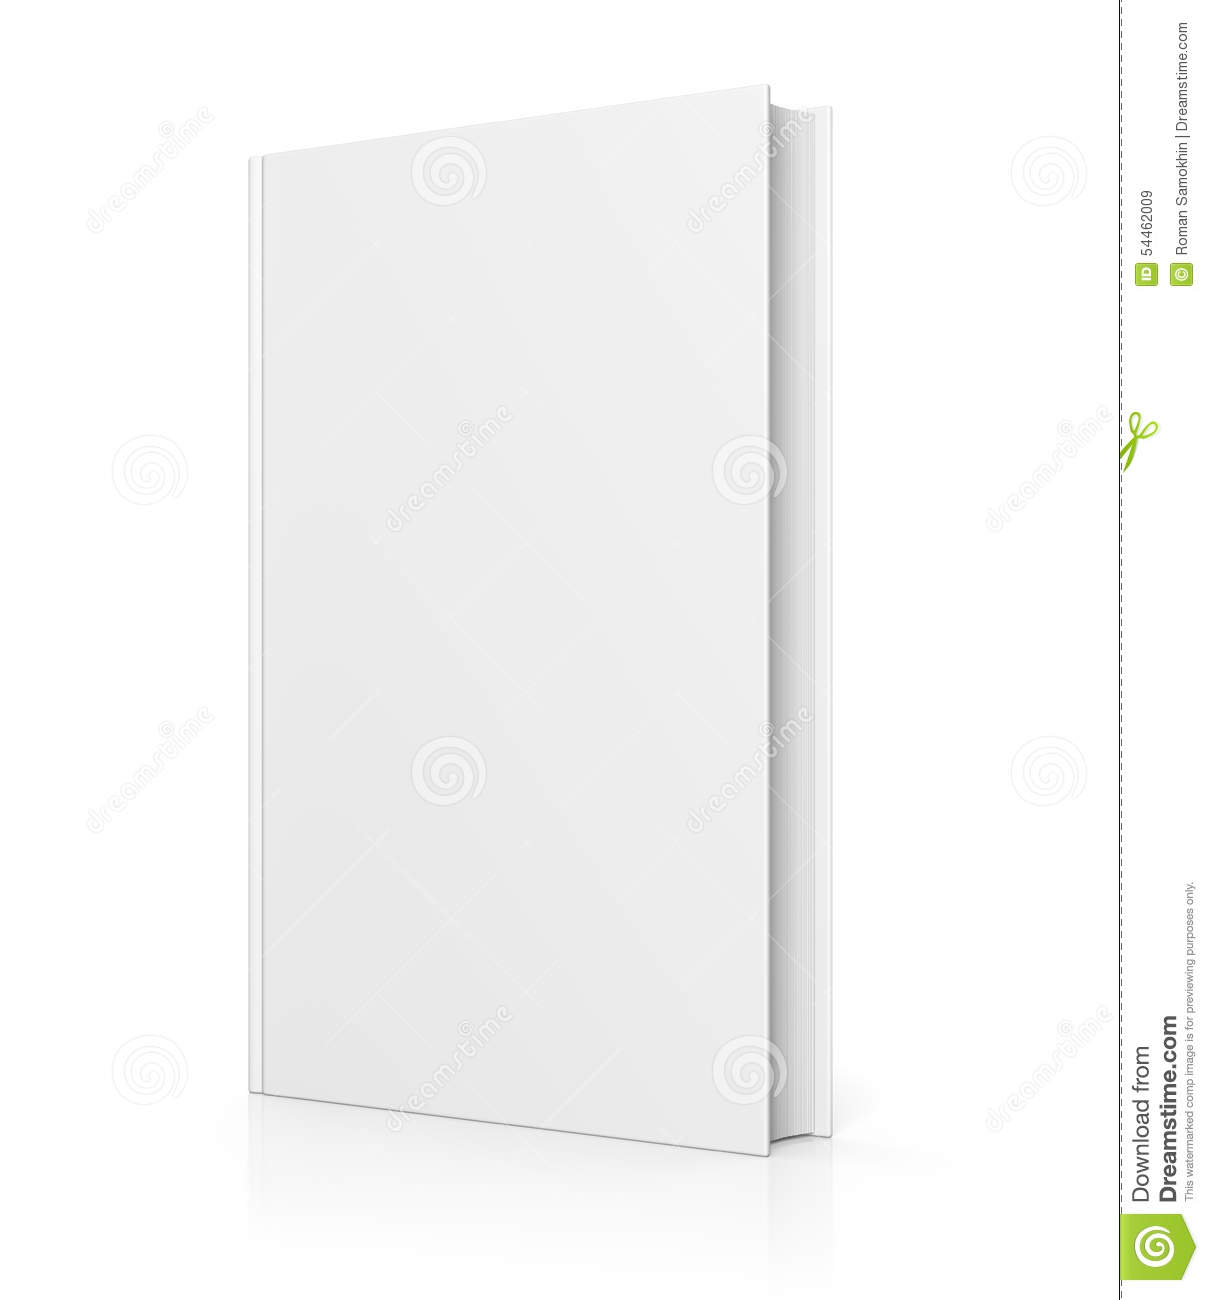 Book Cover White Background : Blank book cover isolated on white stock illustration